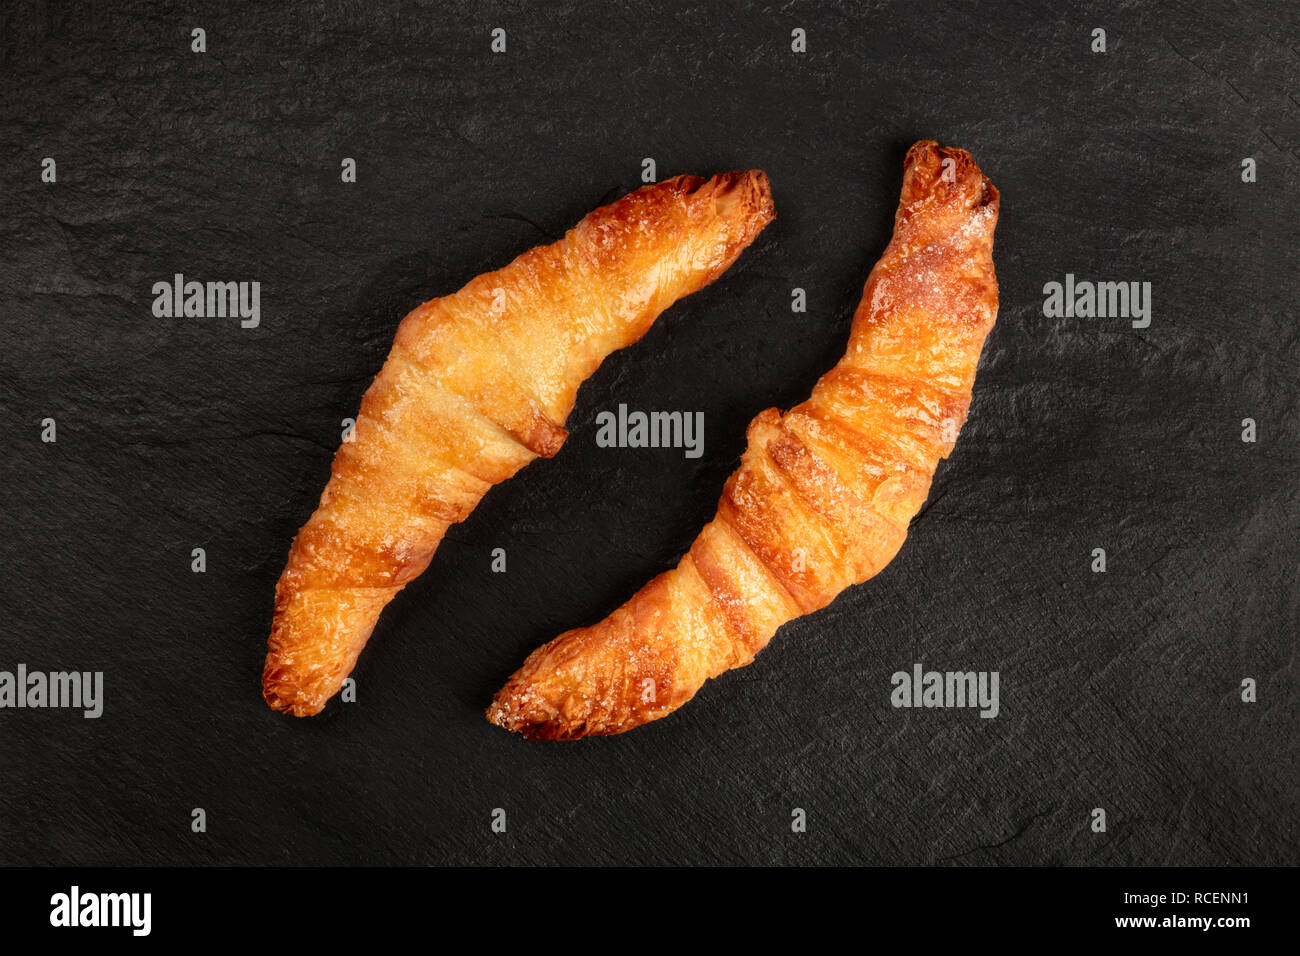 Two croissants on a black background, shot from above, with copy space - Stock Image